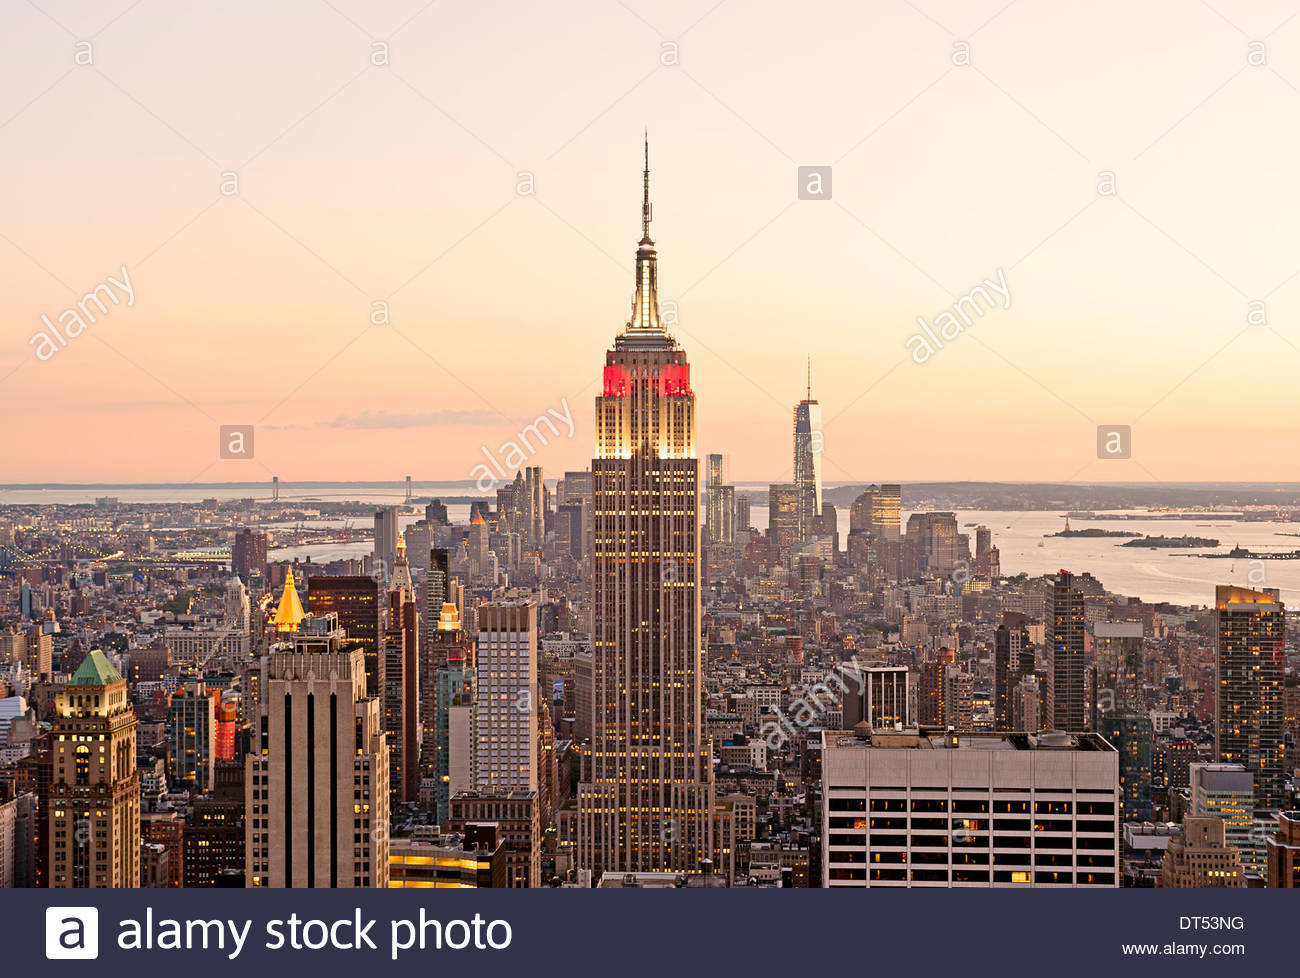 New York Skyline Manhattan New York City Skyline Empire State Building View of New at Dusk Stock Photo